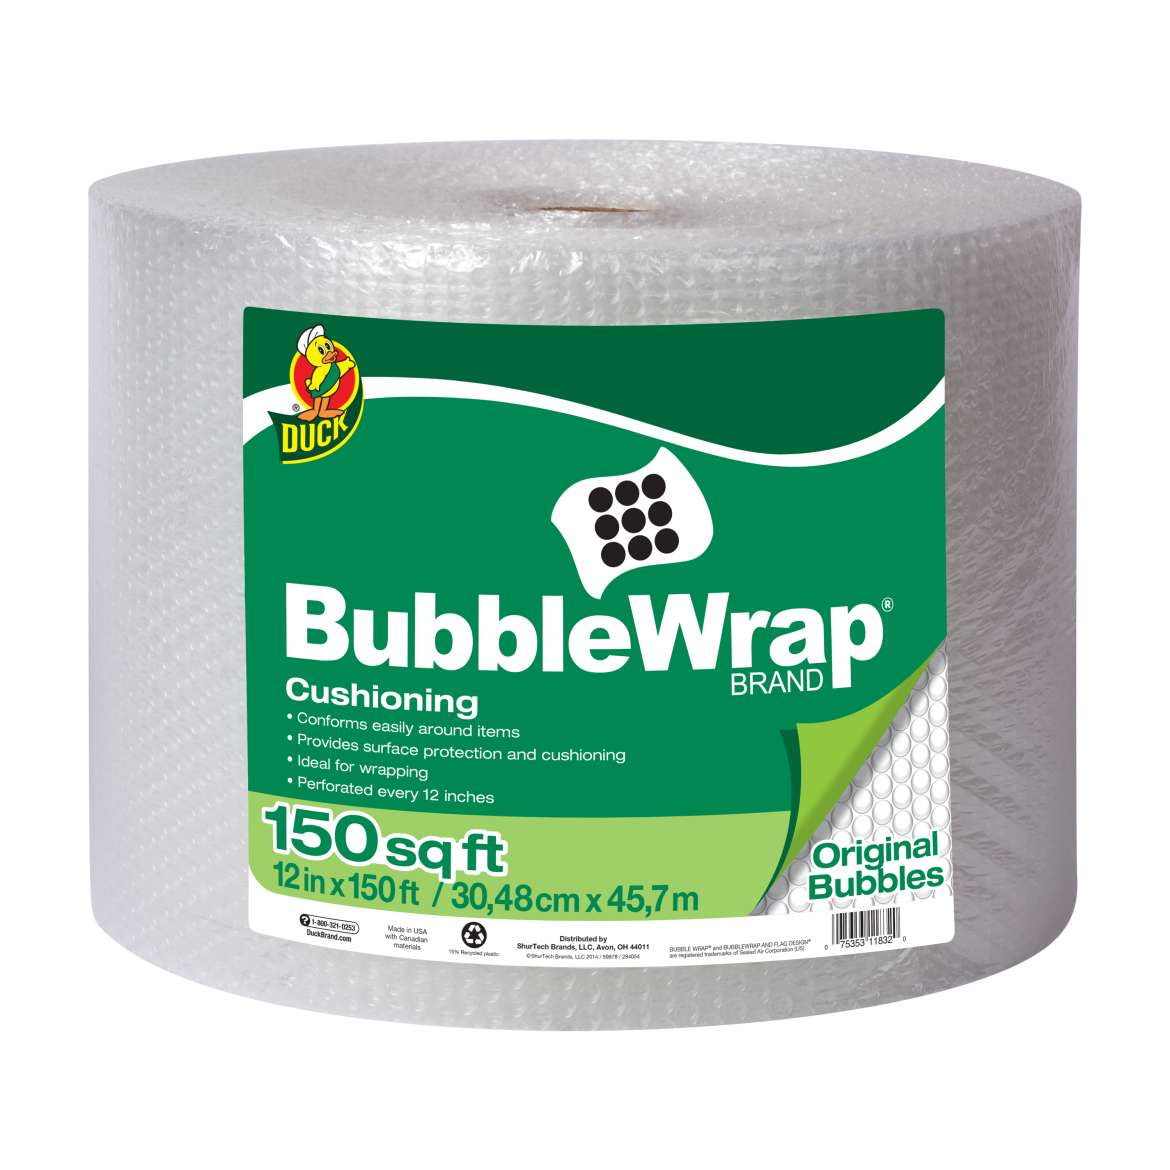 Duck® Brand Original Bubble Wrap® Cushioning - Clear, 12 in. x 150 ft. Image